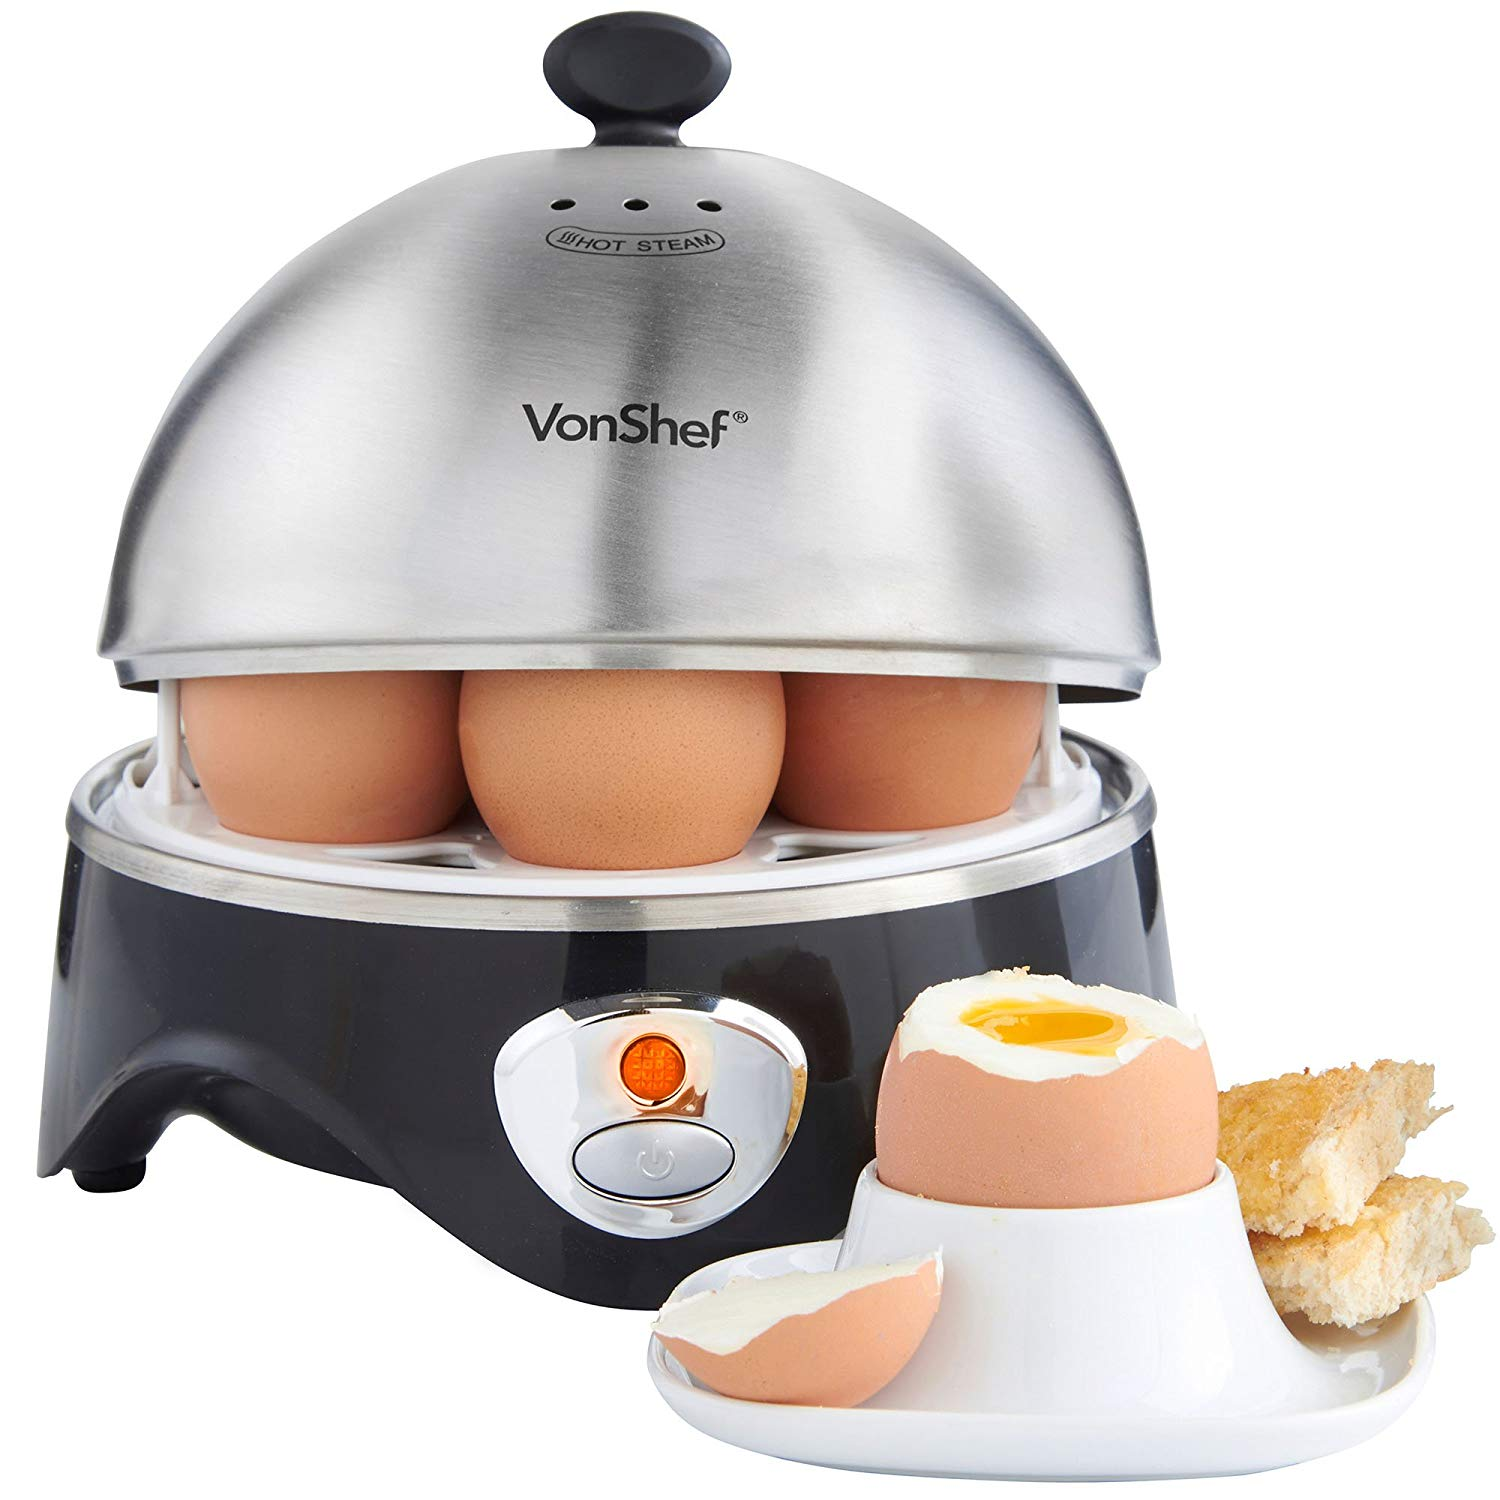 VonShelf Electric Egg Cooker